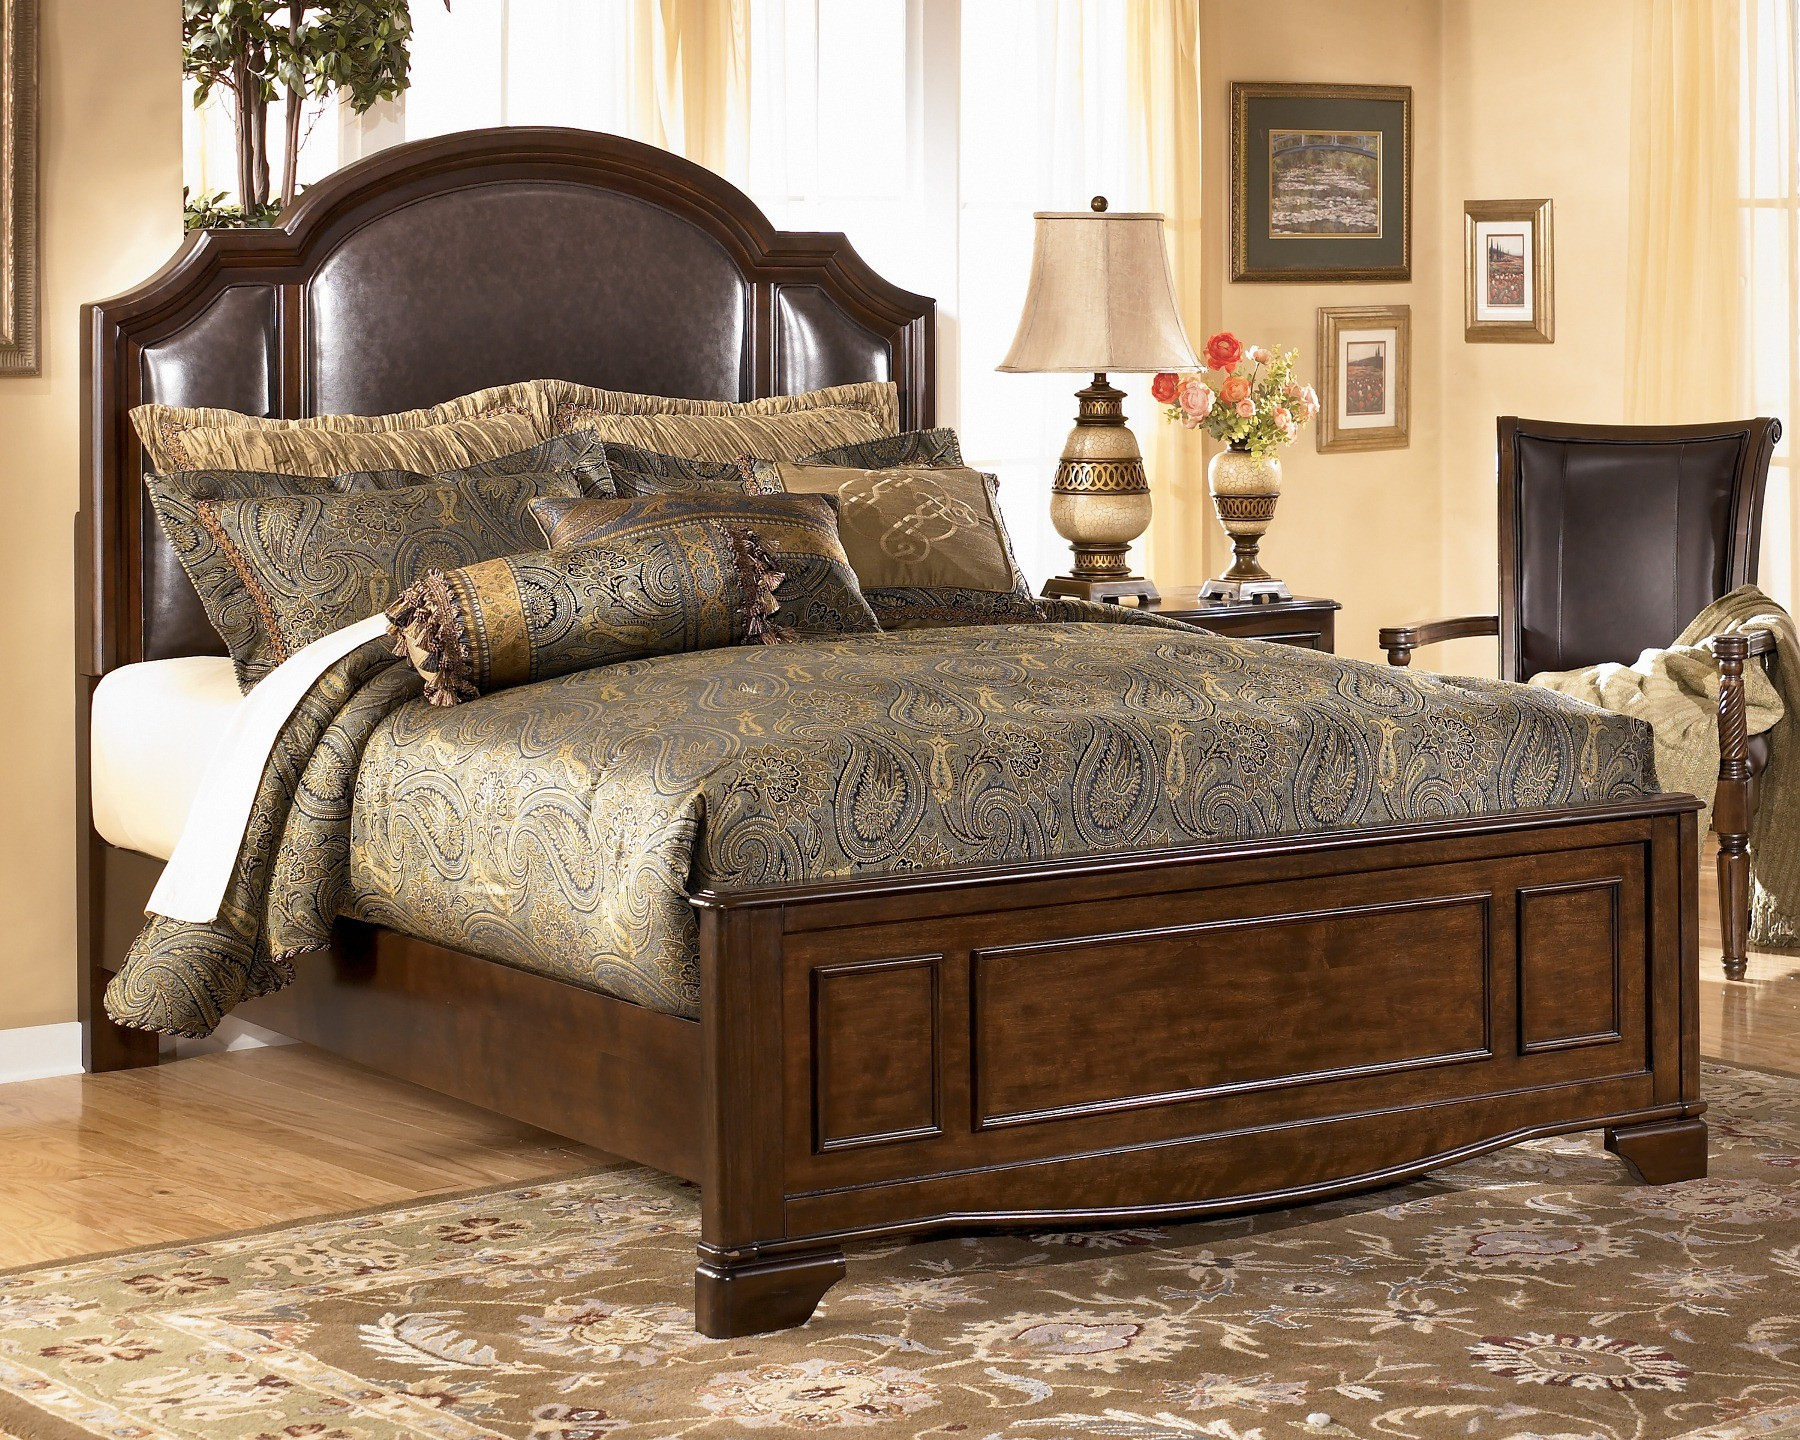 Furniture Bedroom Furniture Panel Bed Upholstered Leather Panel Bed